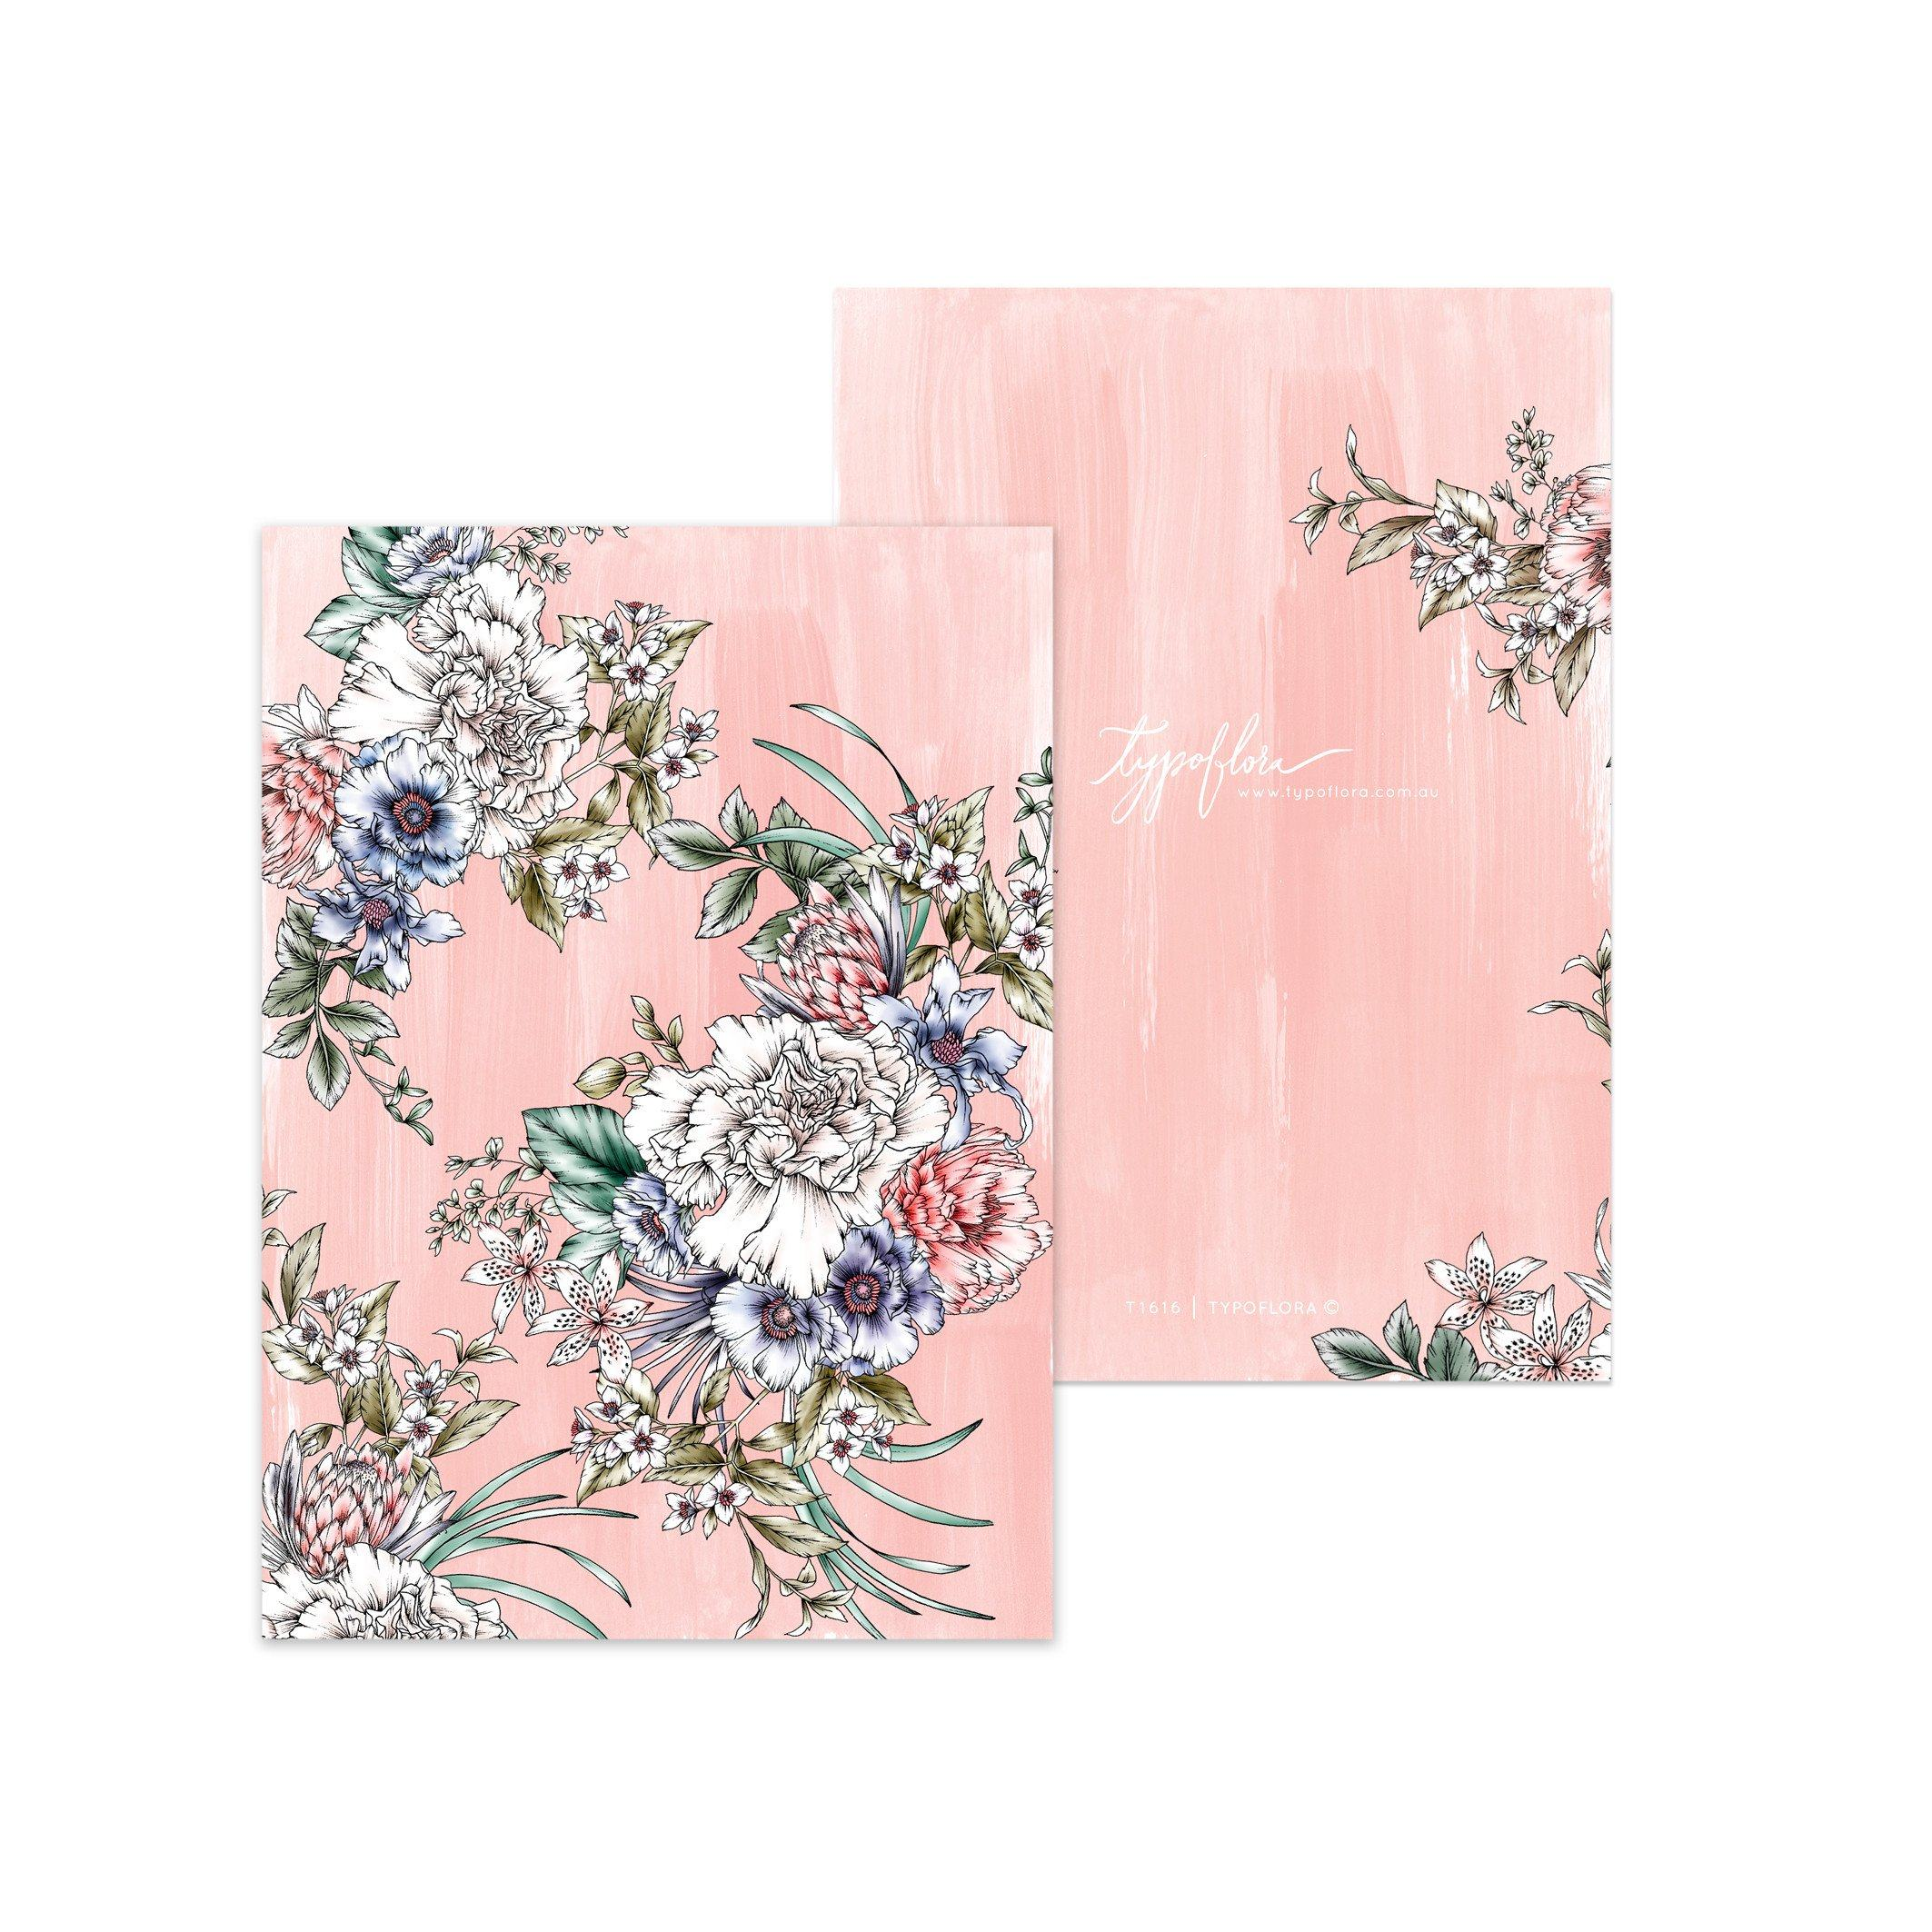 Croral Bouquet Pocket Notebook - Notebooks - Typoflora - Naiise